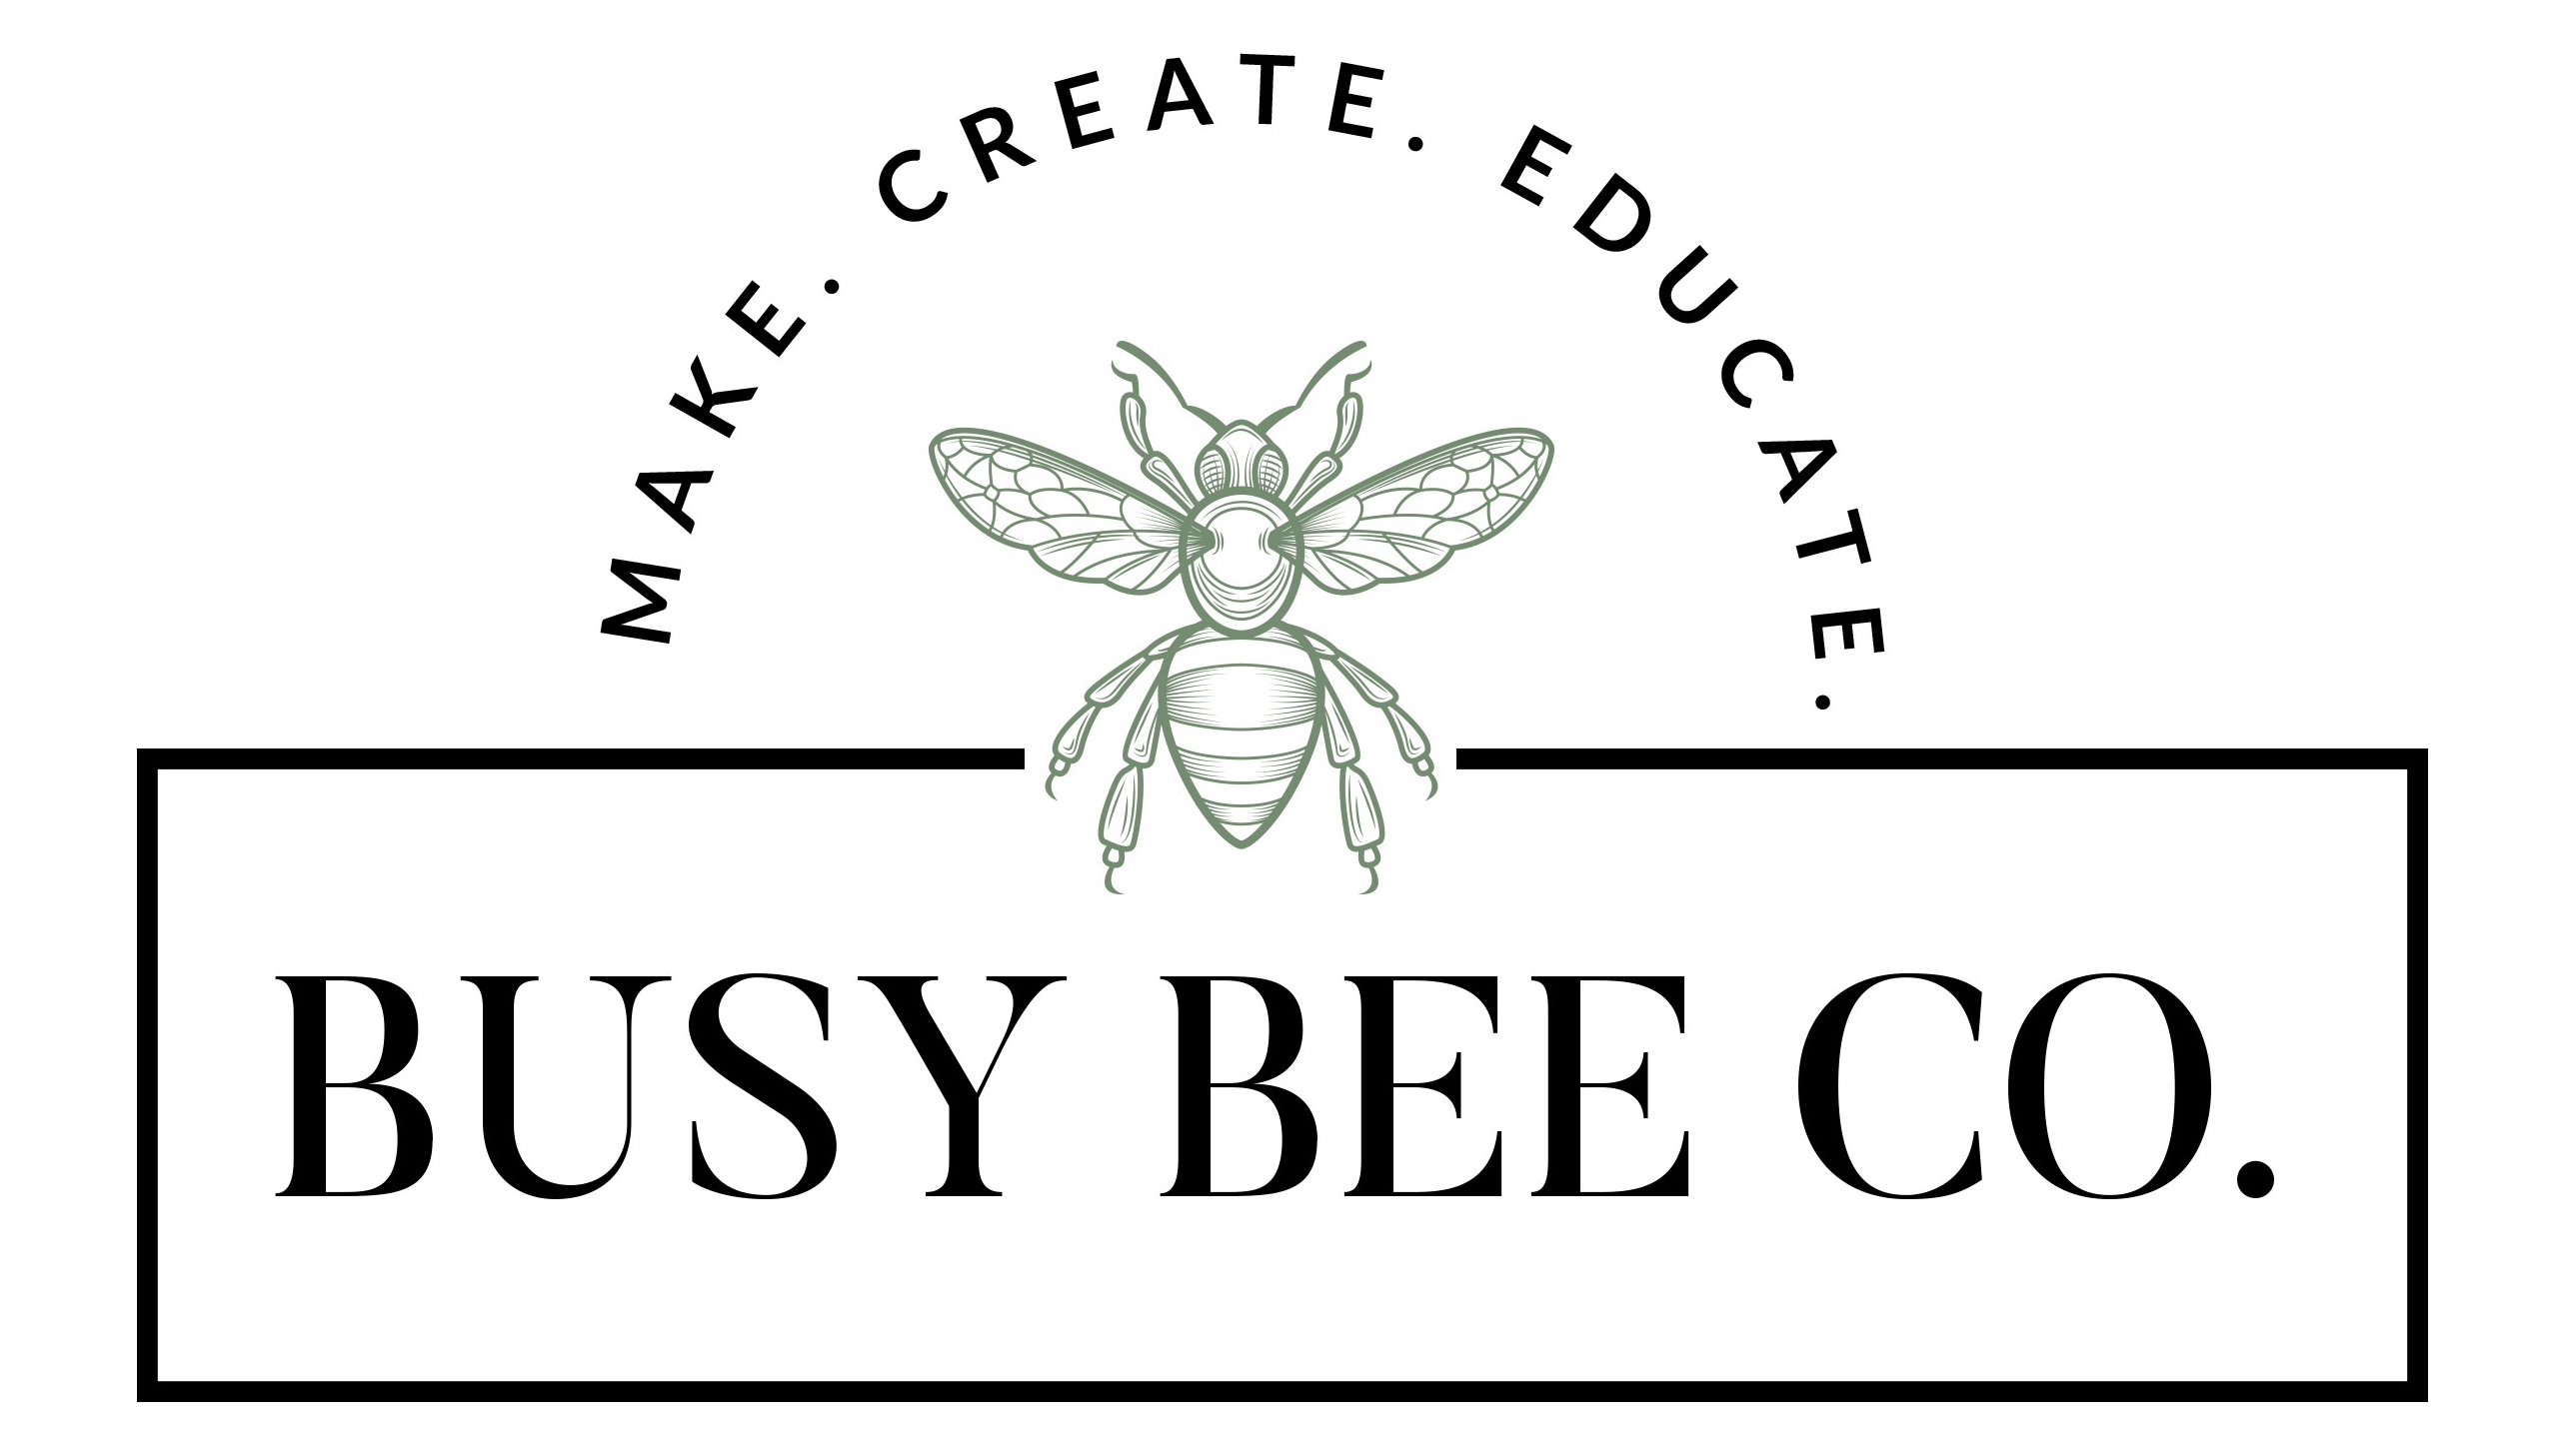 The Busy Bee Co.